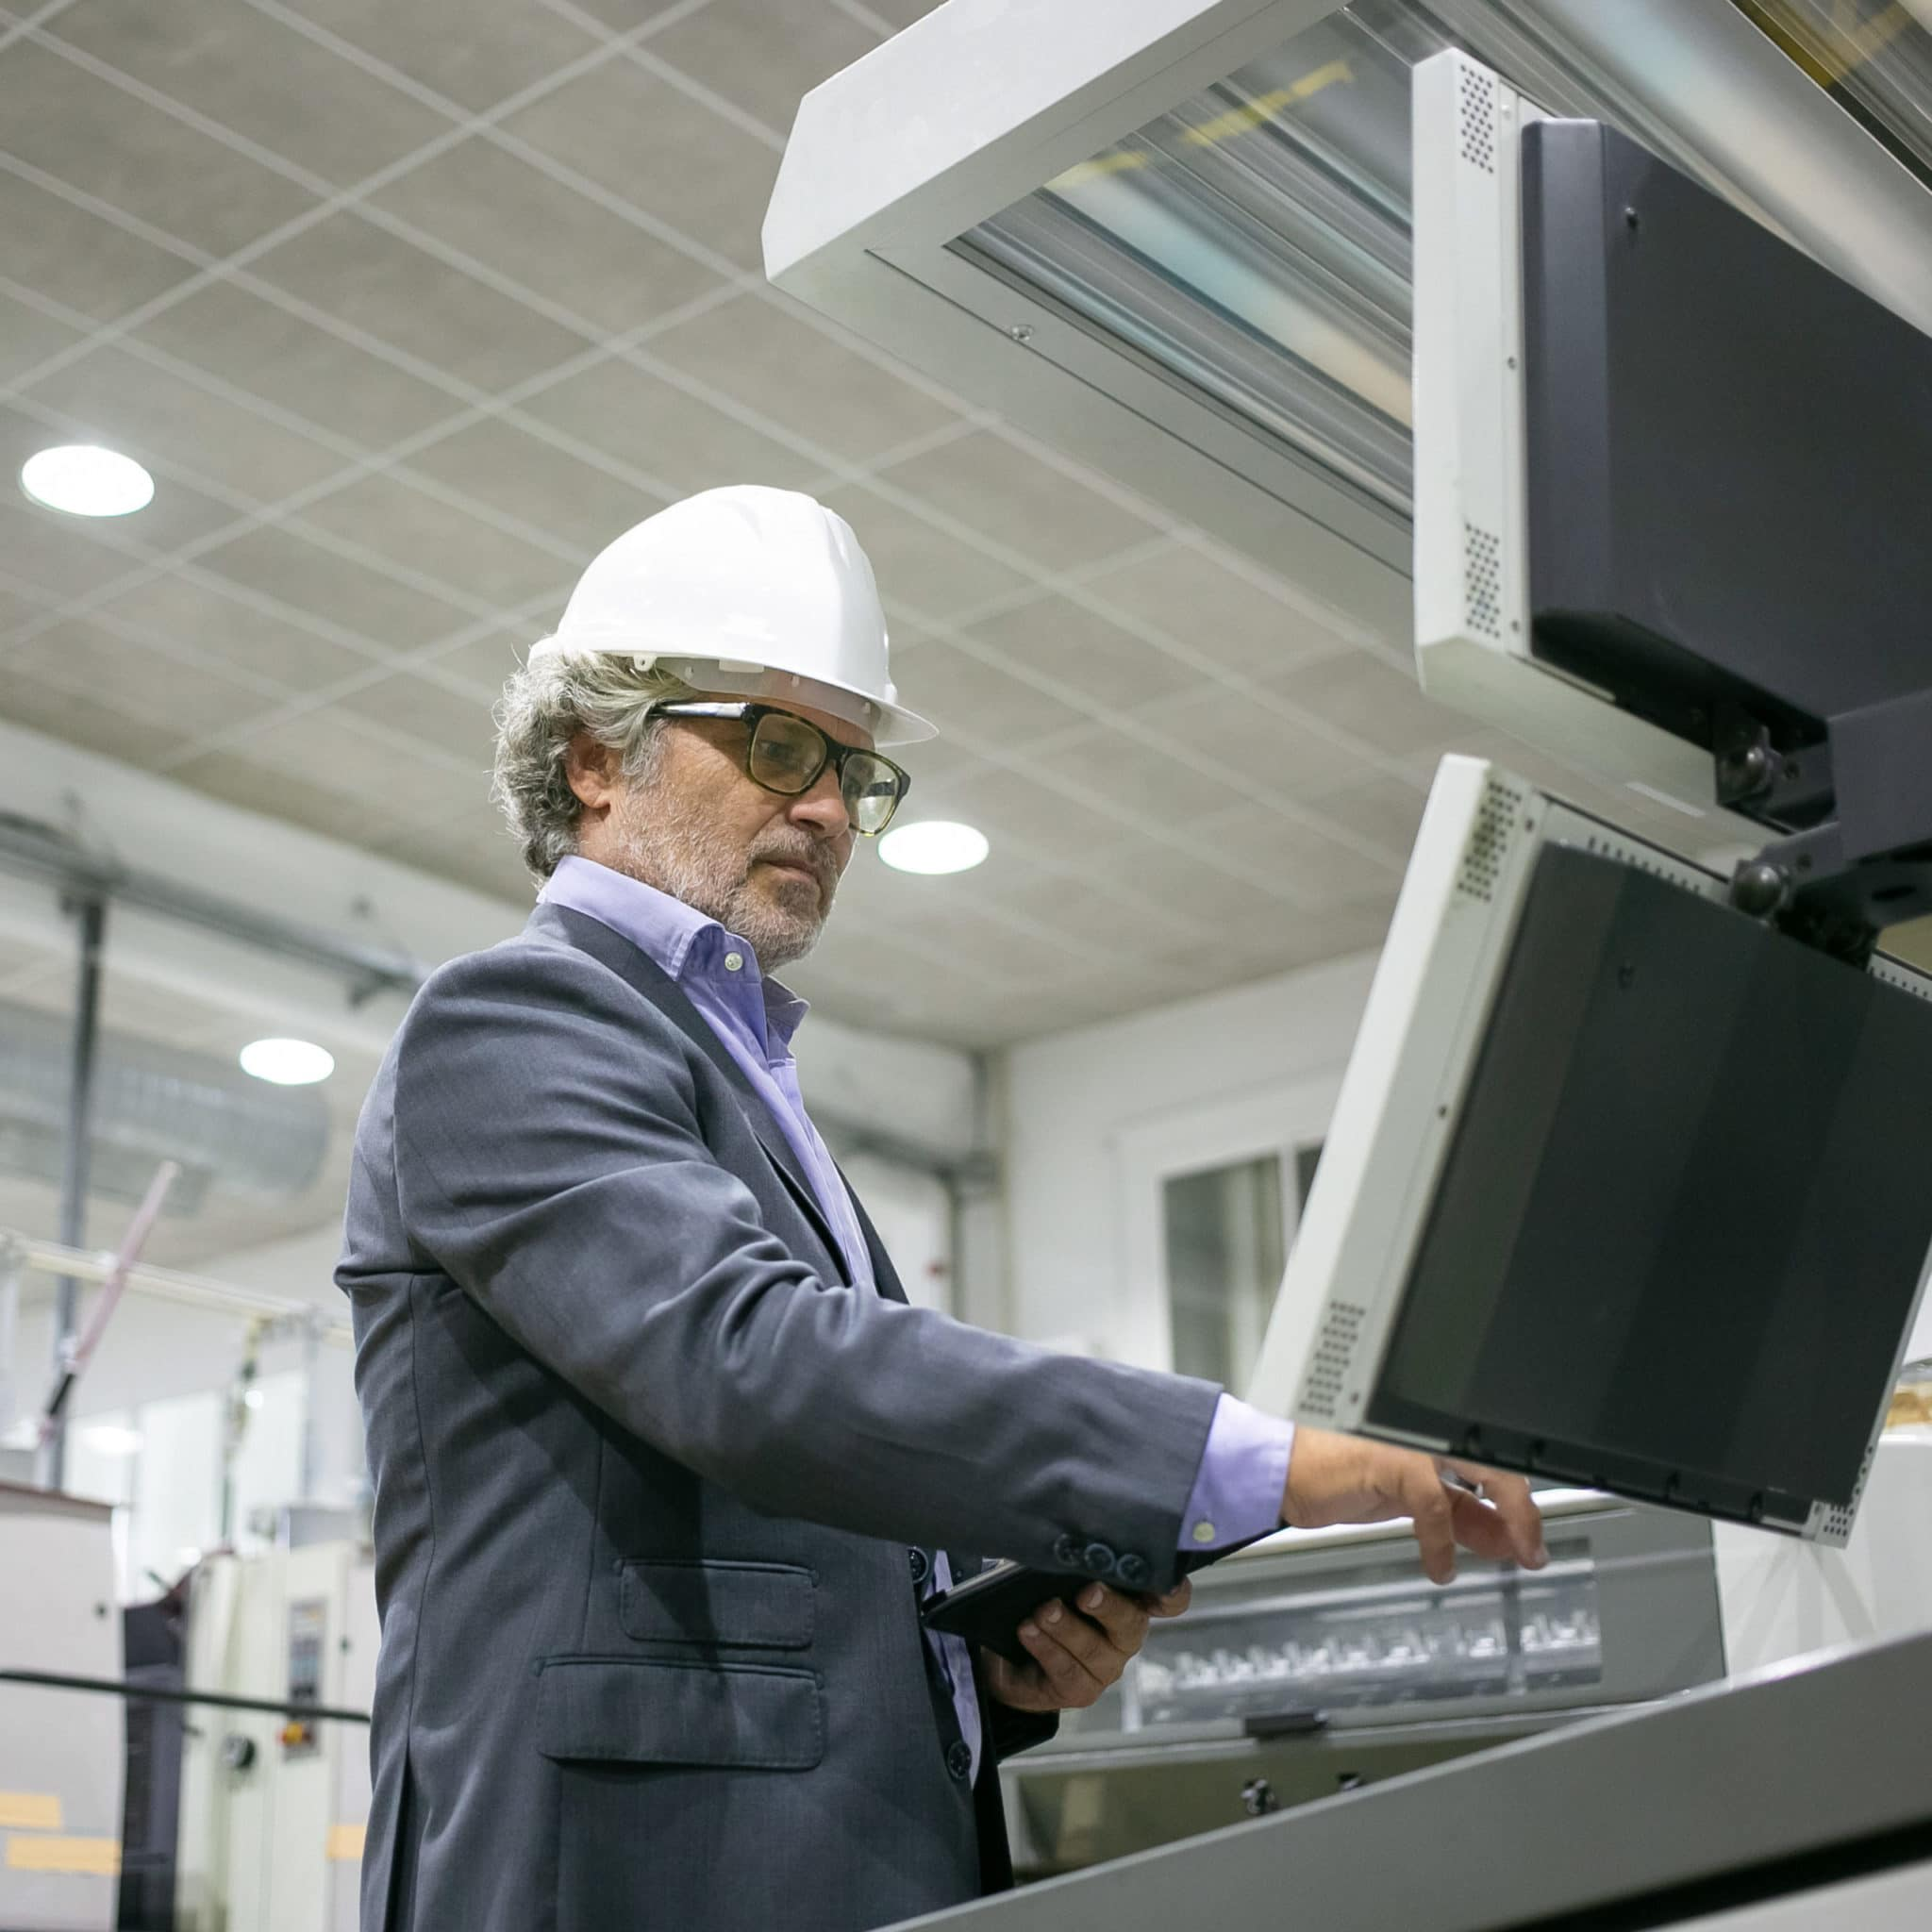 Male engineer with gray hair, wearing glasses and a hard hat, operating industrial machine.